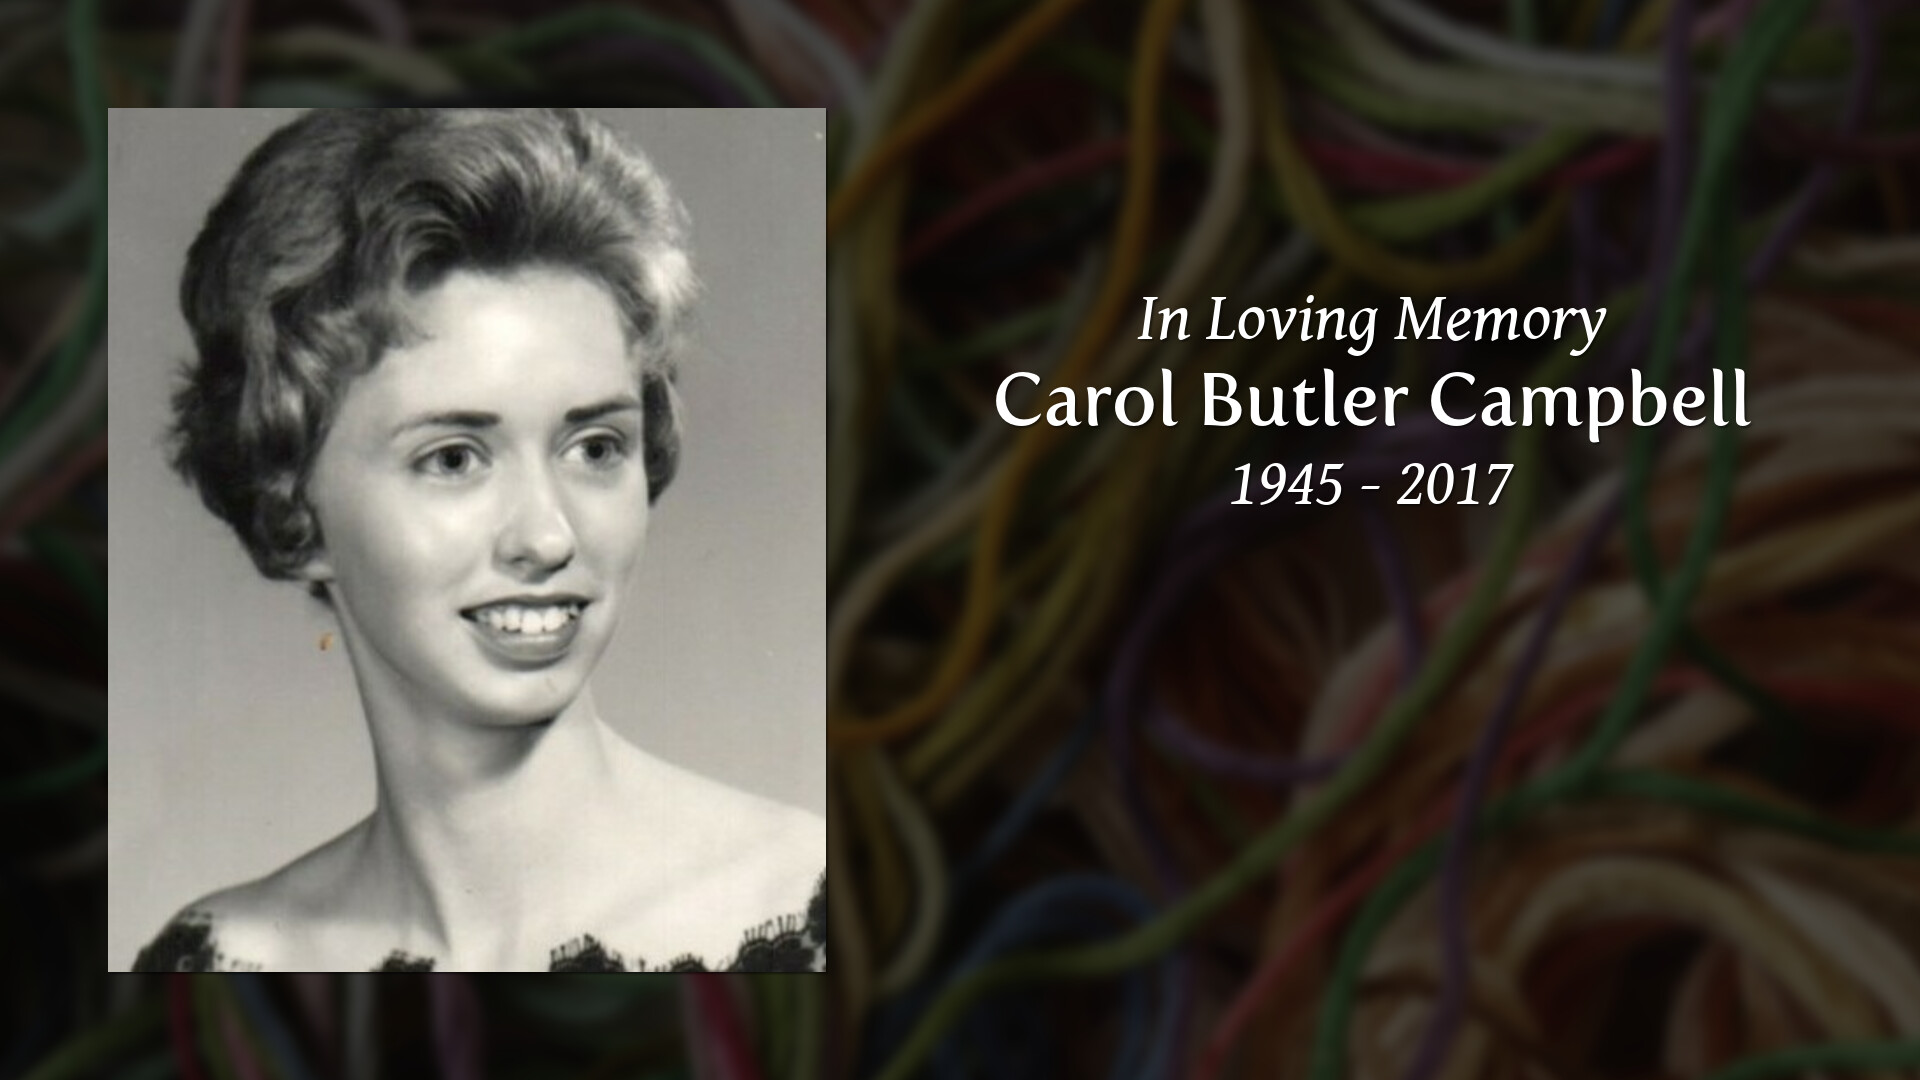 Obituary for Carol Butler Campbell